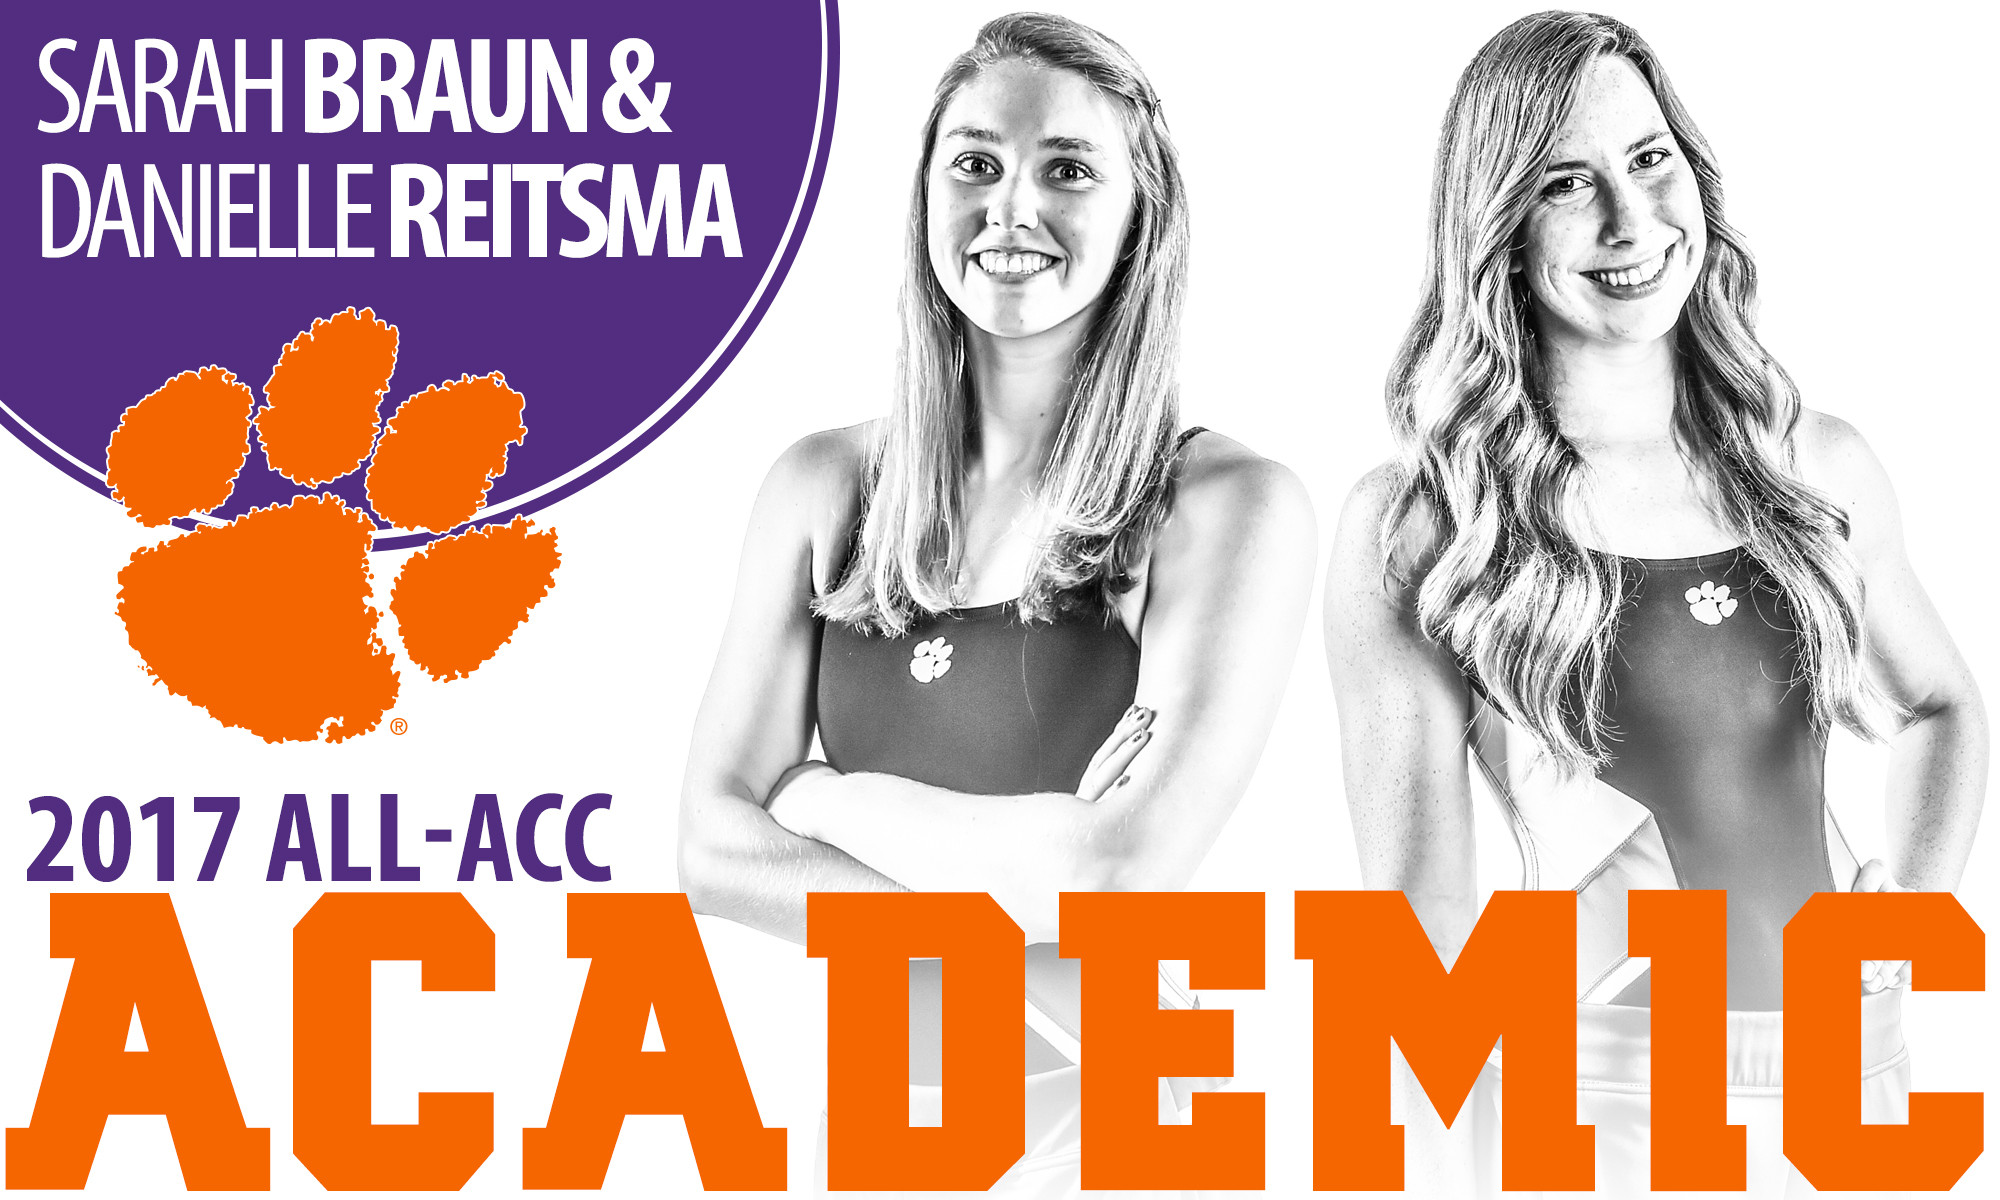 Braun & Reitsma Named to 2017 All-ACC Academic Team